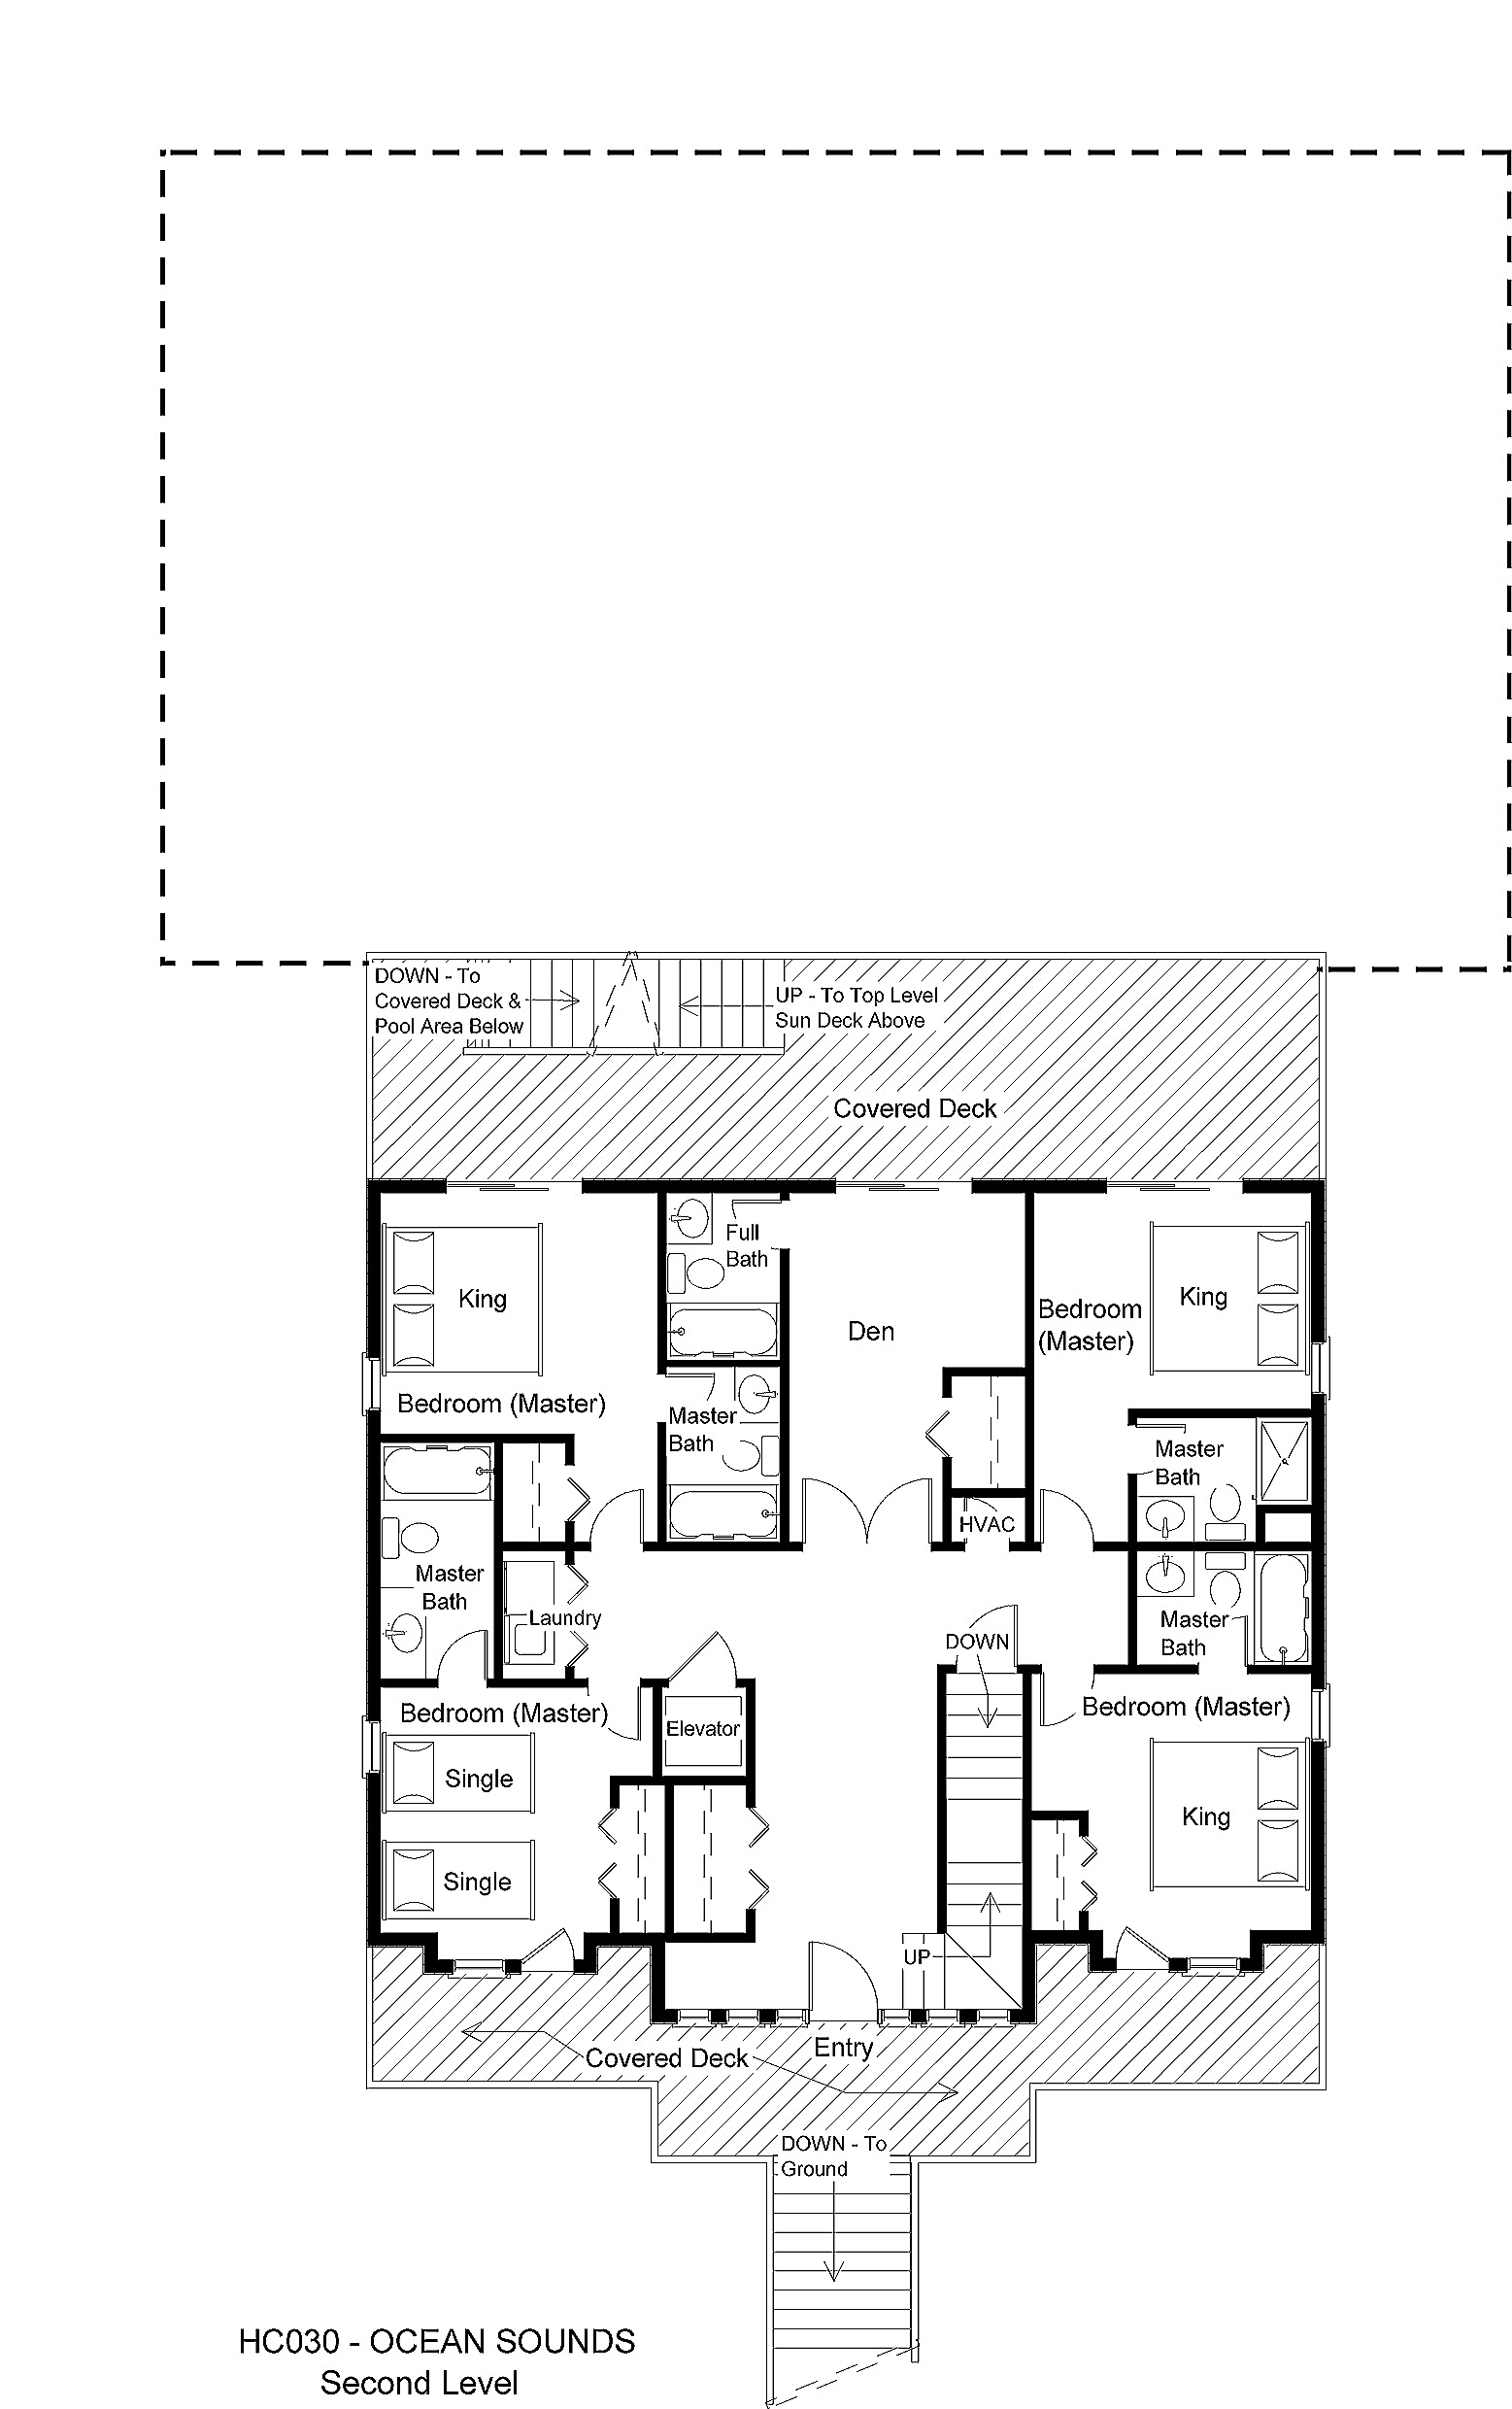 HC030 Ocean Sounds - Floorplan Level 2